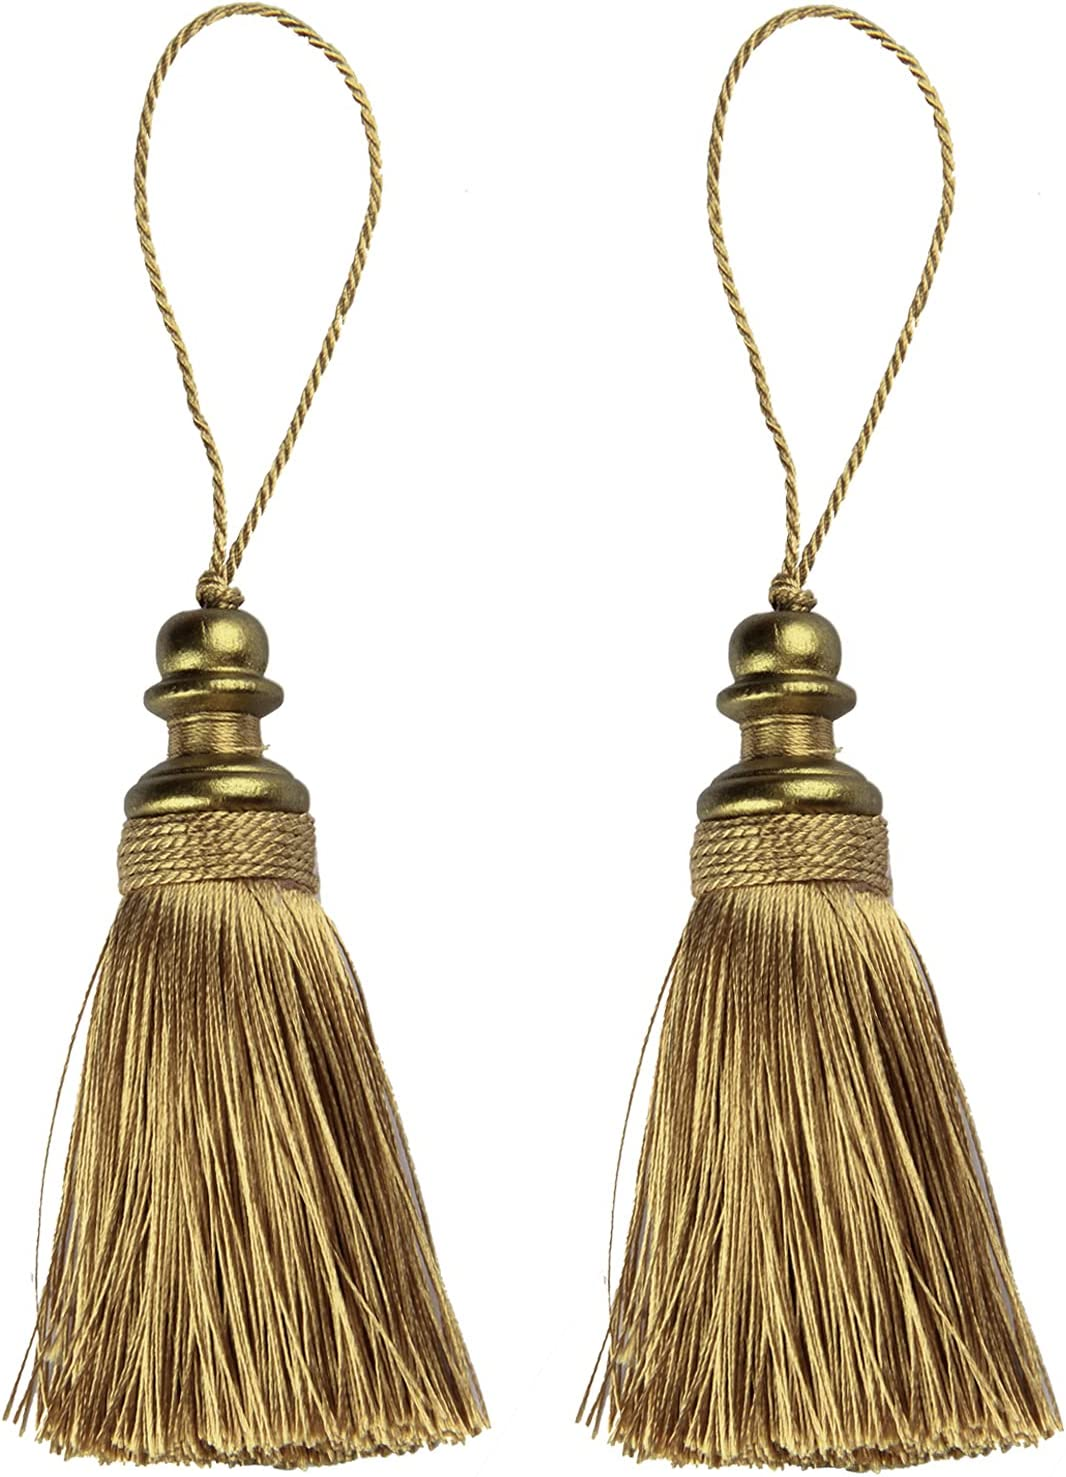 HedongHexi 2 Pack Tassel NEW Handmade with Key Louisville-Jefferson County Mall Loops